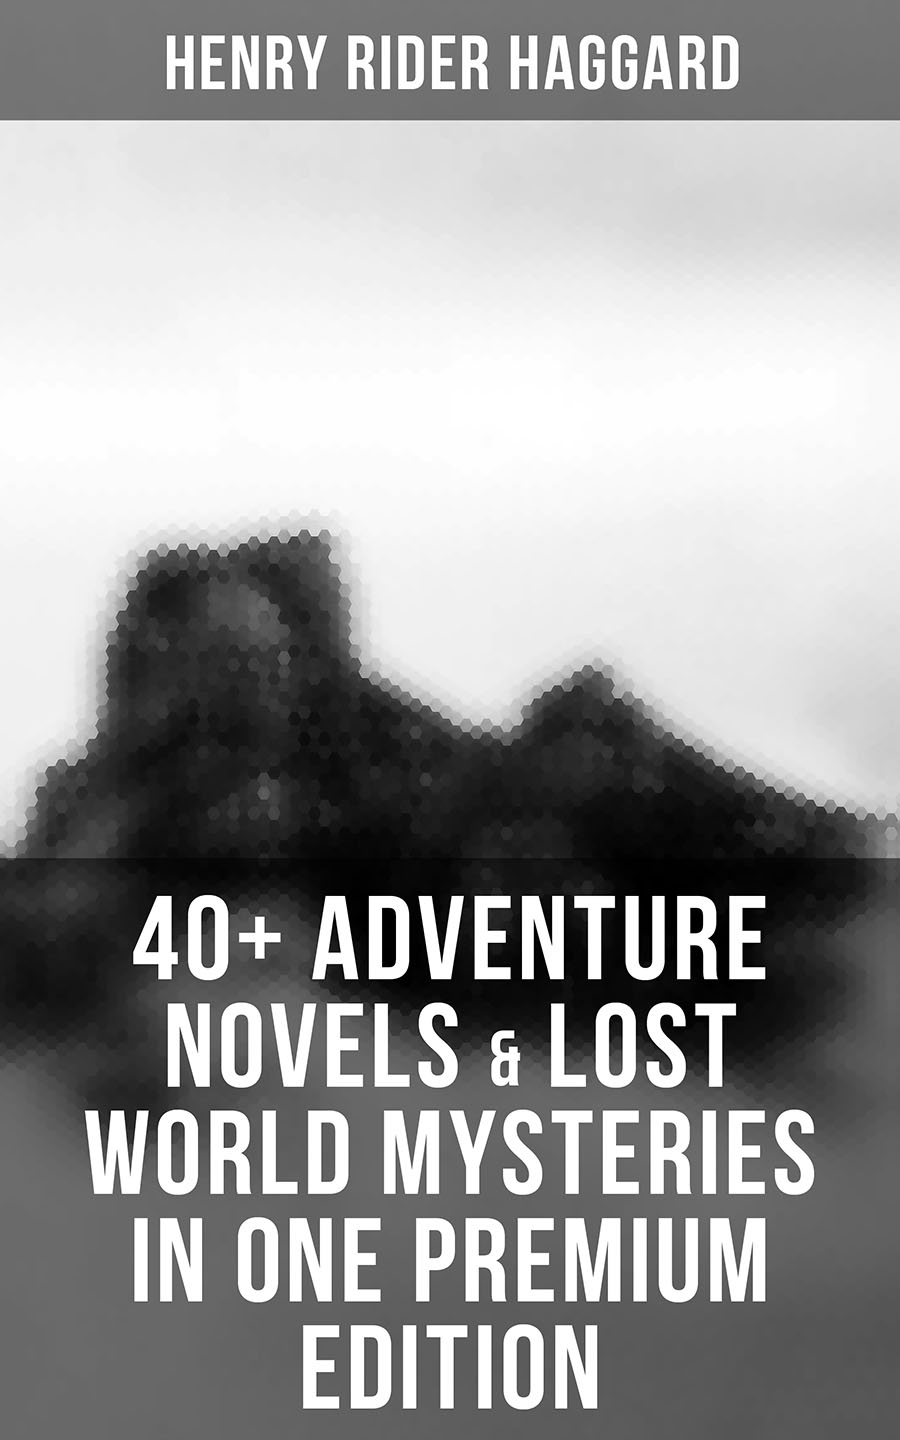 40+ Adventure Novels & Lost World Mysteries in One Premium Edition ( Henry Rider Haggard  )